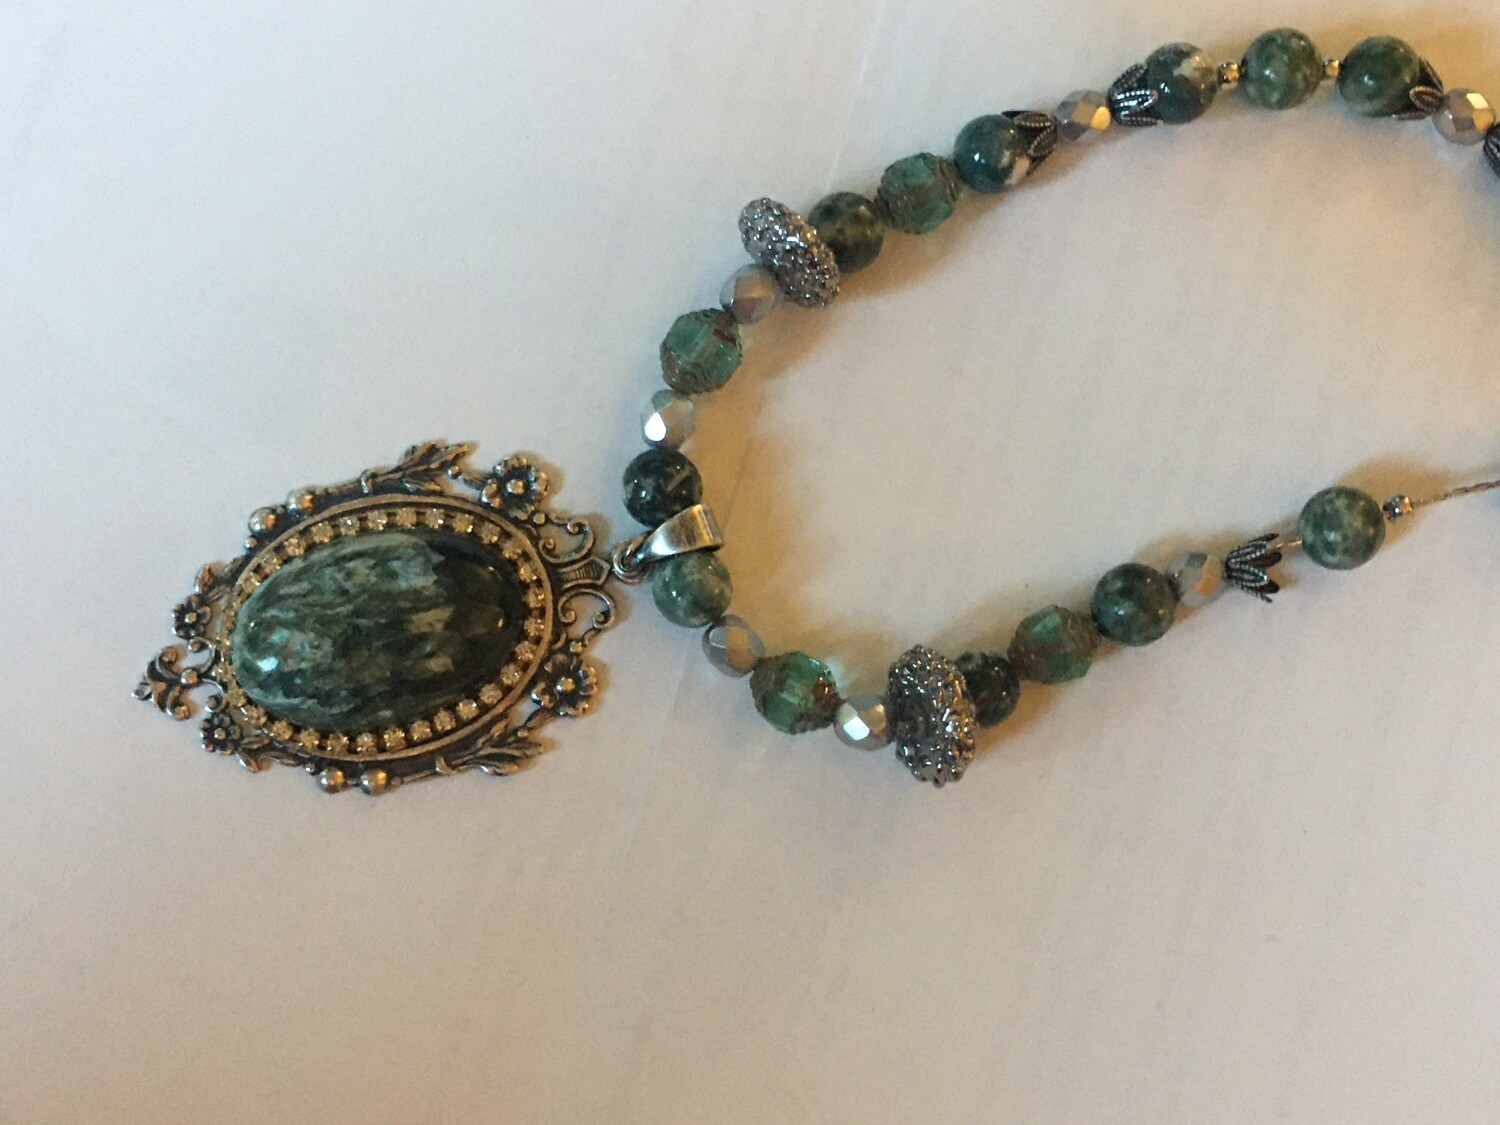 Seraphinite Gemstone Necklace And Tree-agate Green Necklace